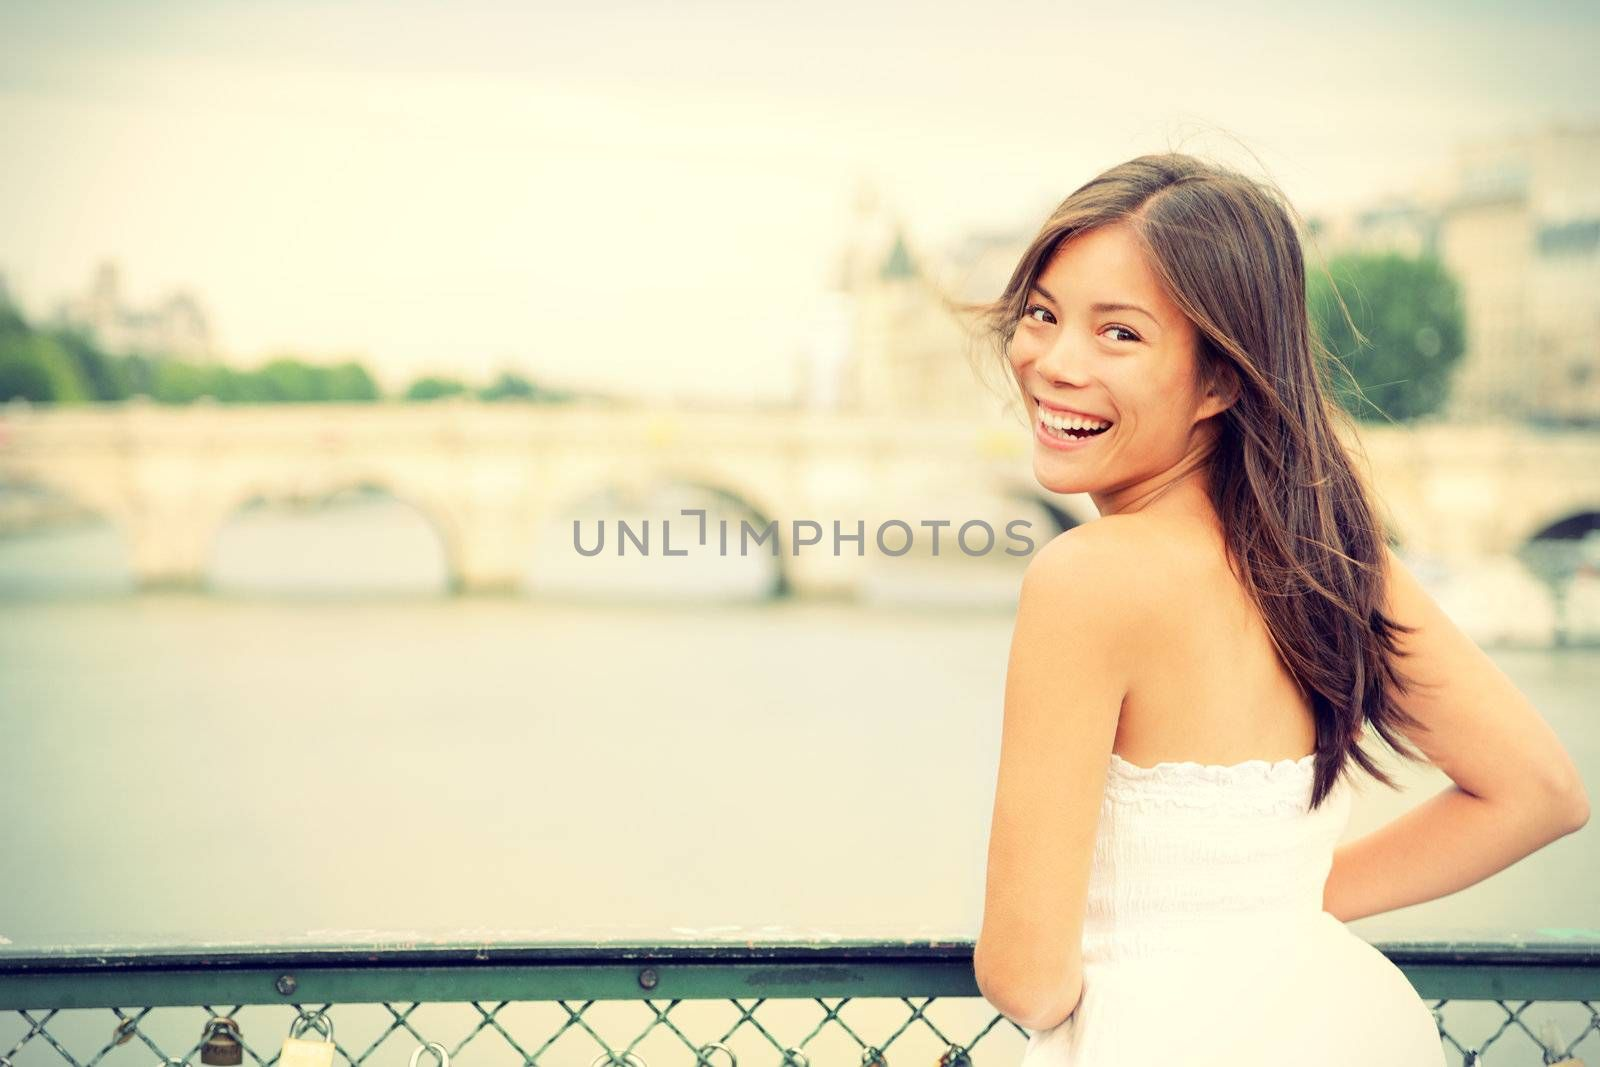 Paris woman laughing joyful and candid in Paris on brige on river Seine. Fresh energetic young mixed race Asian Caucasian female model joyful.